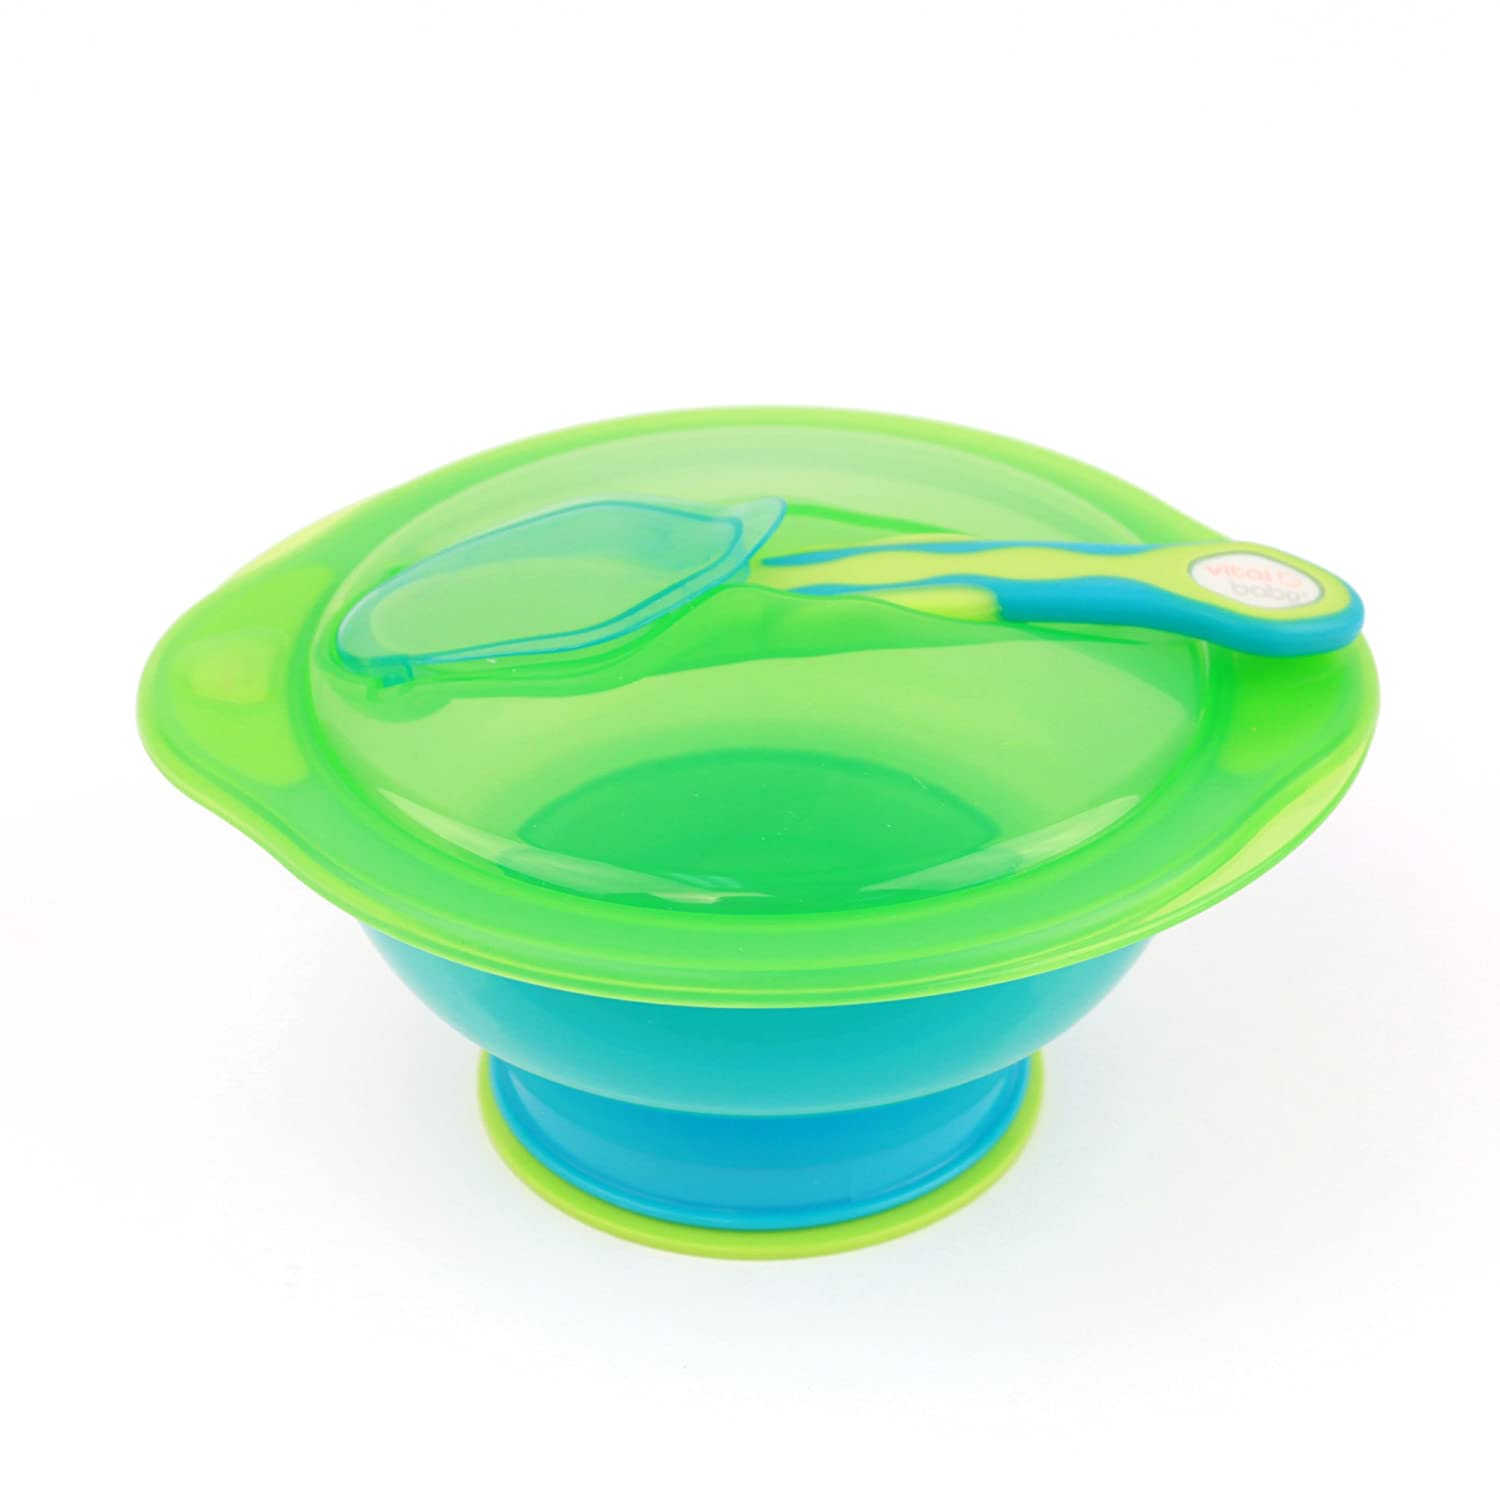 Vital Baby Unbelievabowl Suction Bowl with Lid & Spoon, Blue 43037